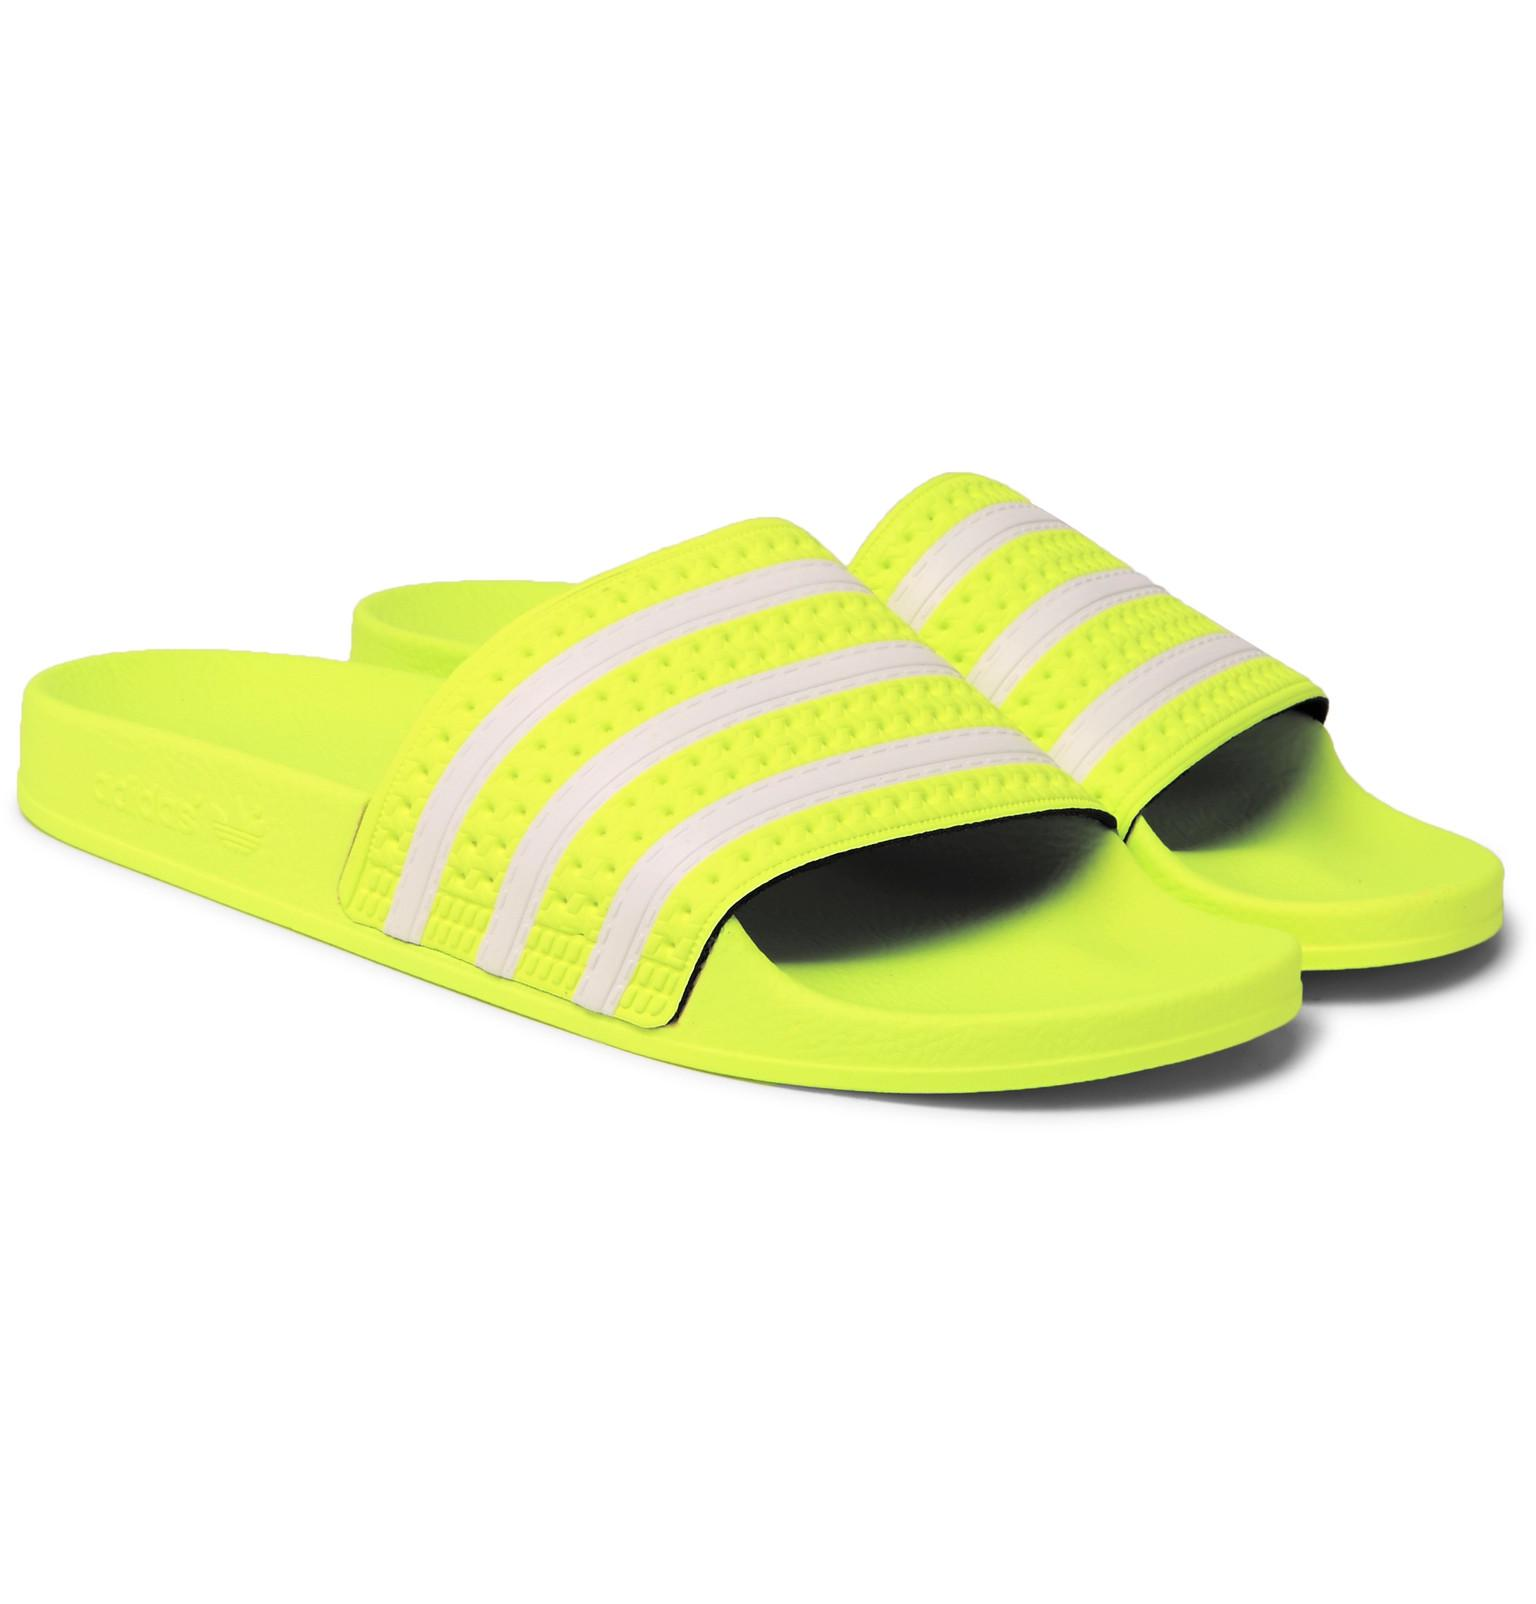 89b74bfff7bcc8 Adidas Originals Adilette Textured-rubber Slides in Yellow for Men ...